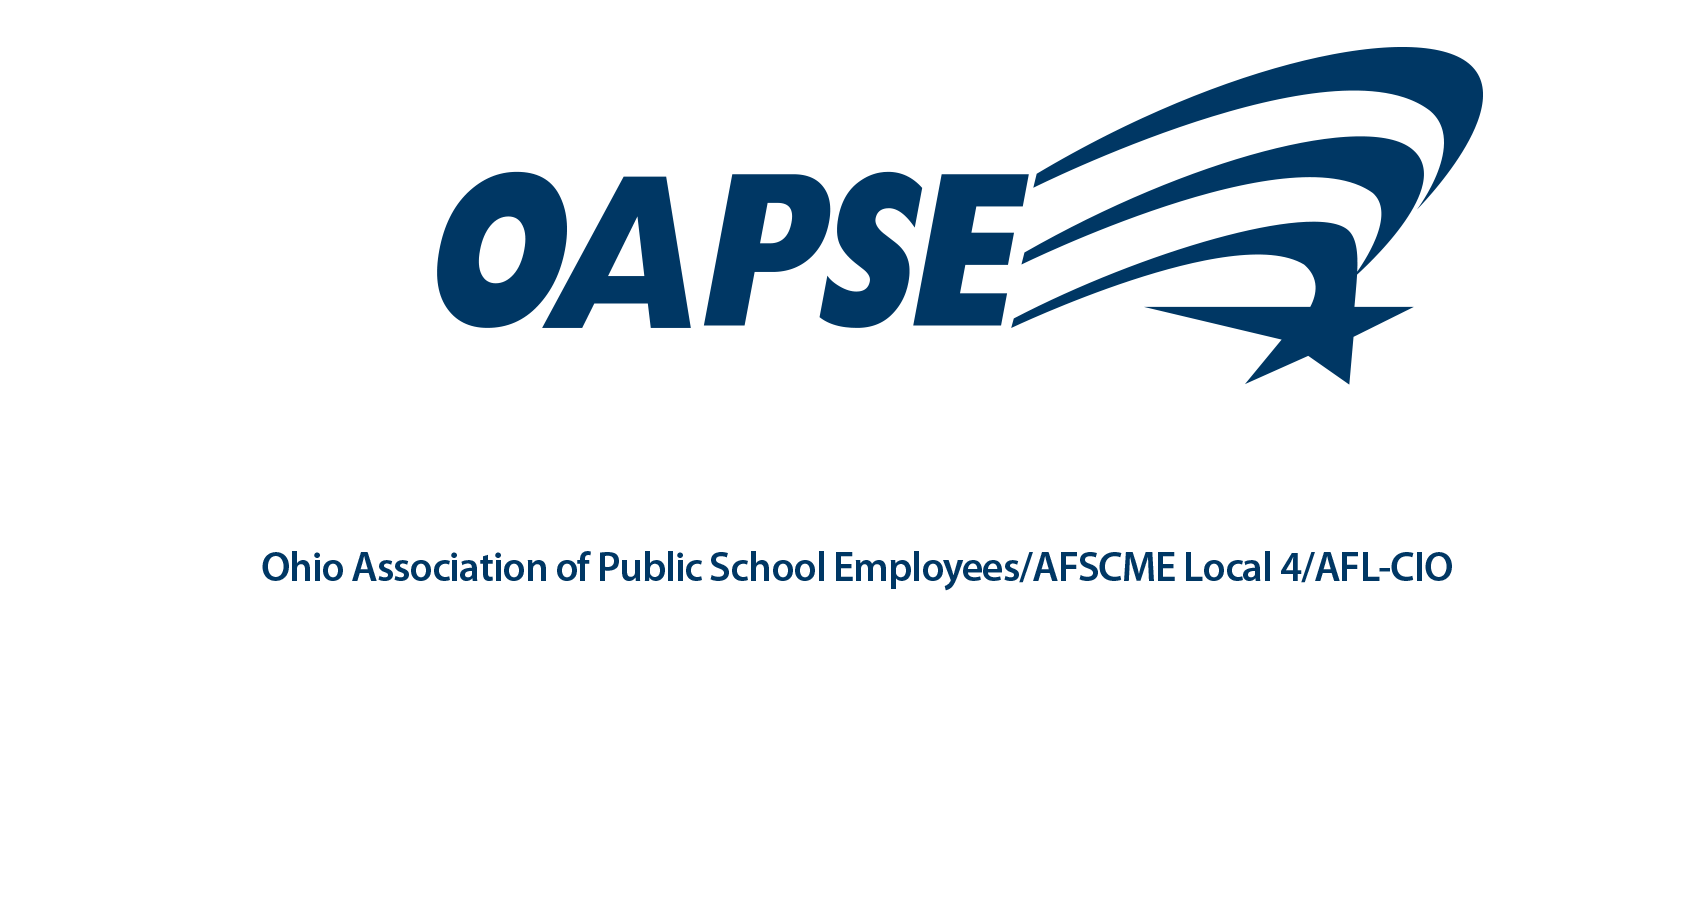 Copy of Ohio Association of Public School Employees